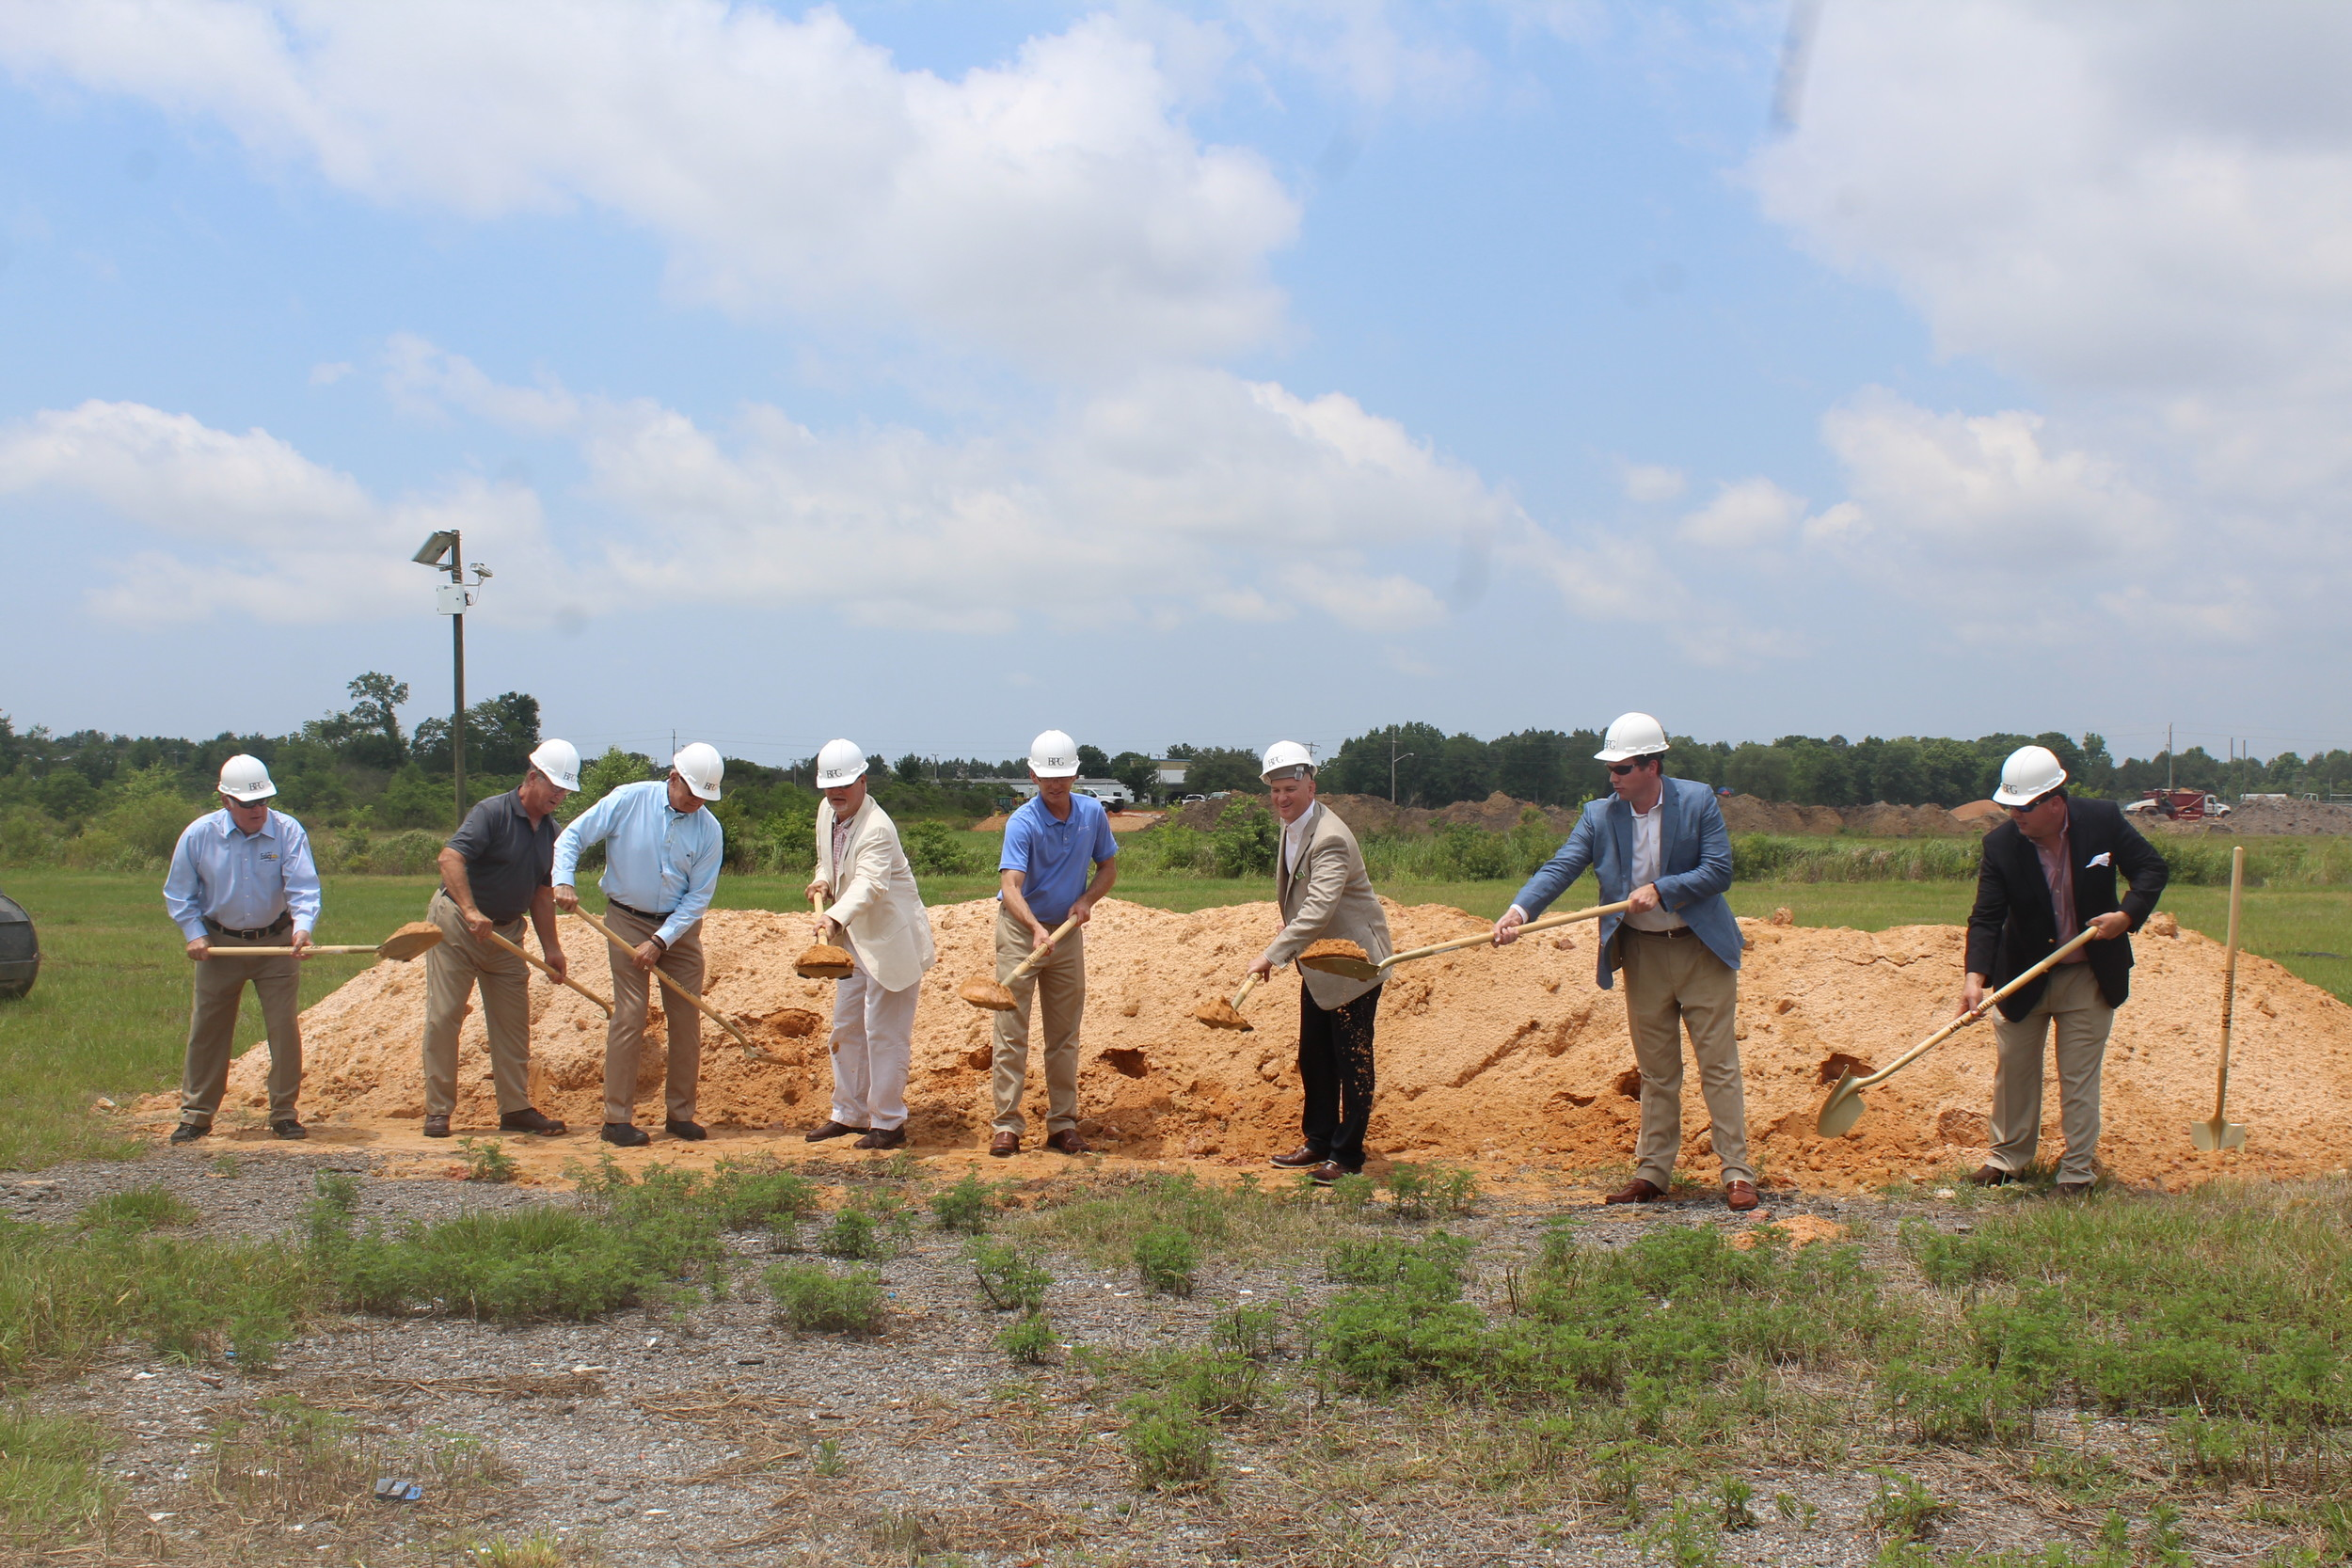 Burton Property Group employees and Foley city officials break ground for the new Foley/Riviera Square.